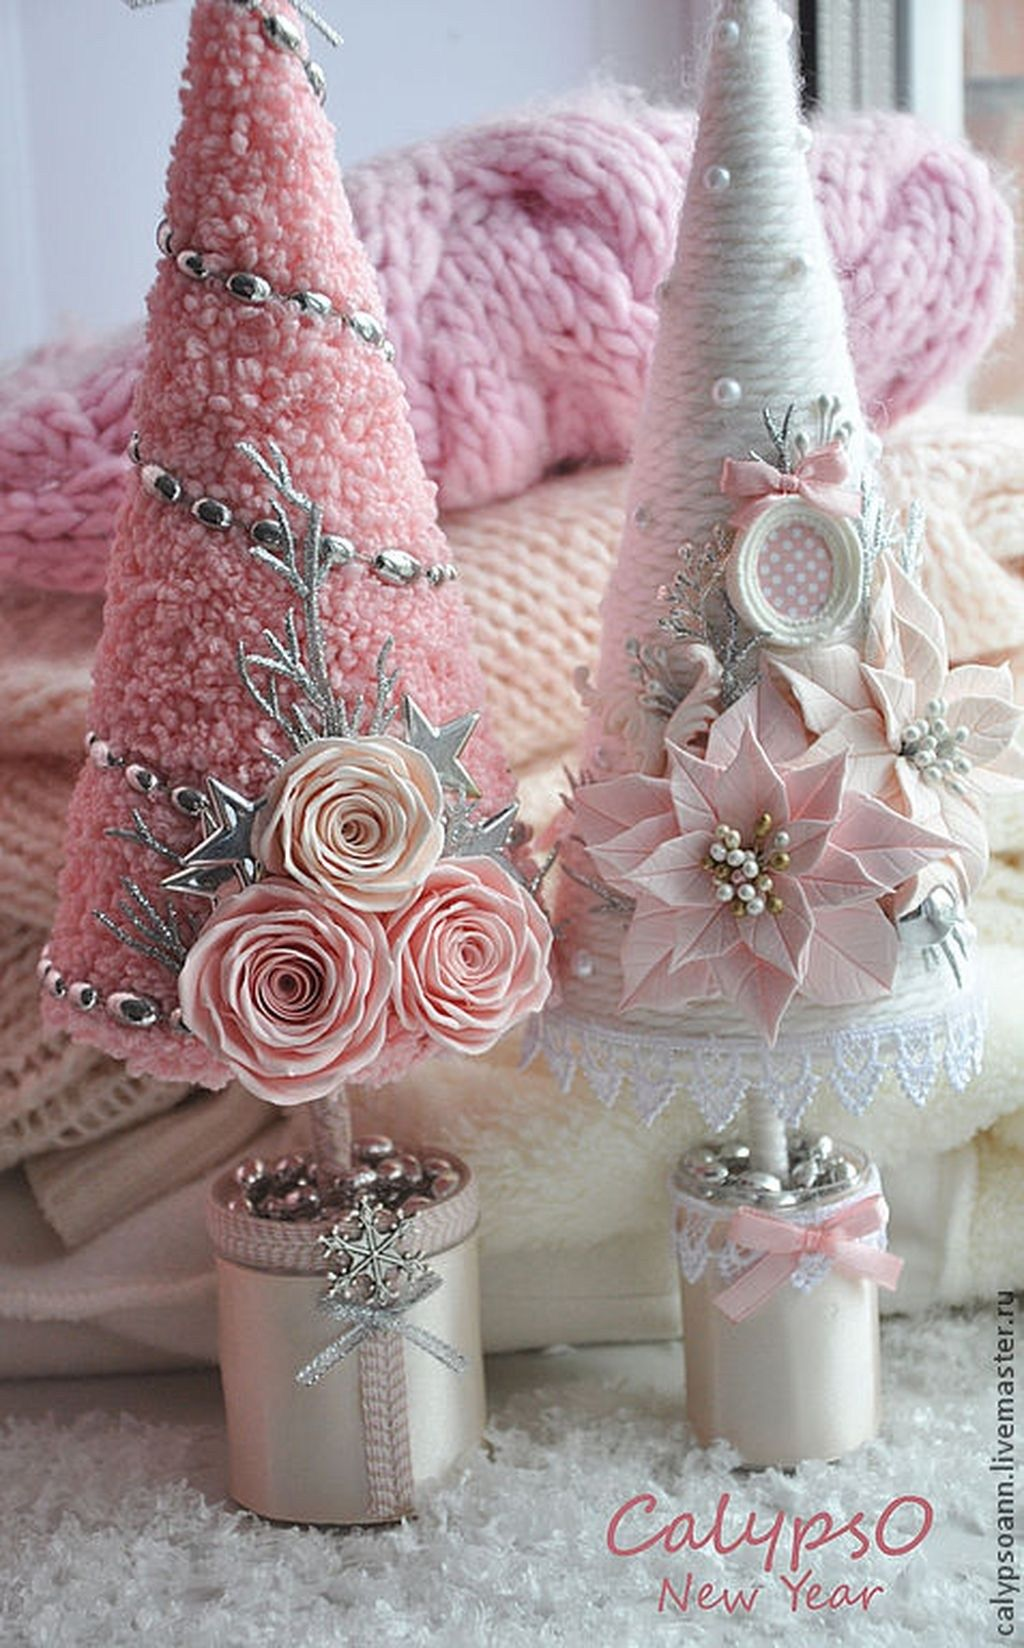 Cute And Adorable Pink Christmas Tree Decoration Ideas 22 Cute And Adorable Pink Christmas Tree Decoration Ideas 22 Christmas Decorations christmas tree decorations